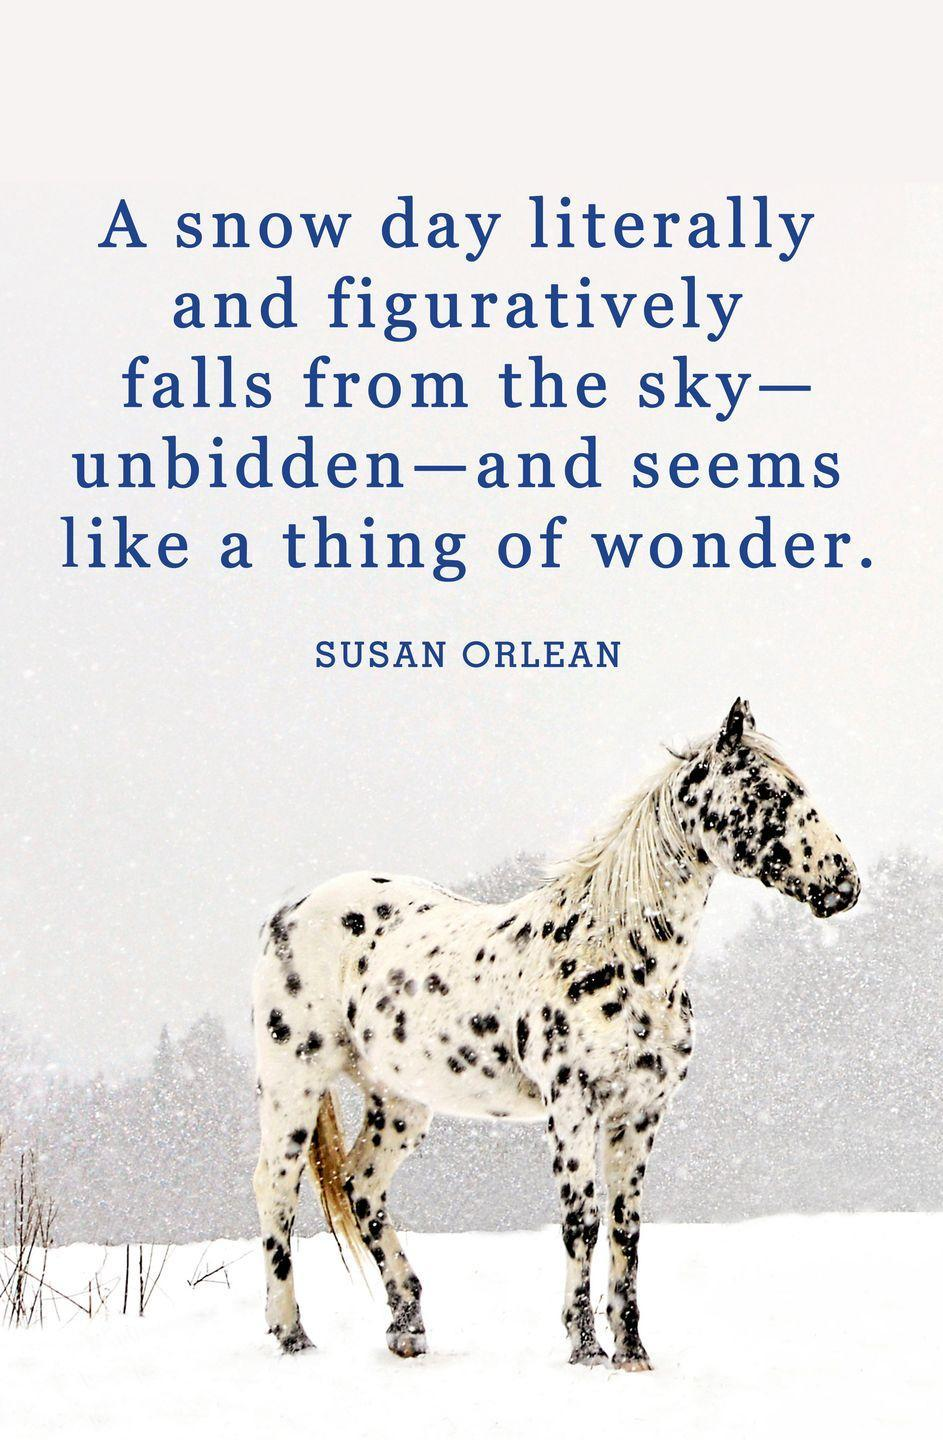 "<p>""A snow day literally and figuratively falls from the sky—unbidden—and seems like a thing of wonder.""</p>"